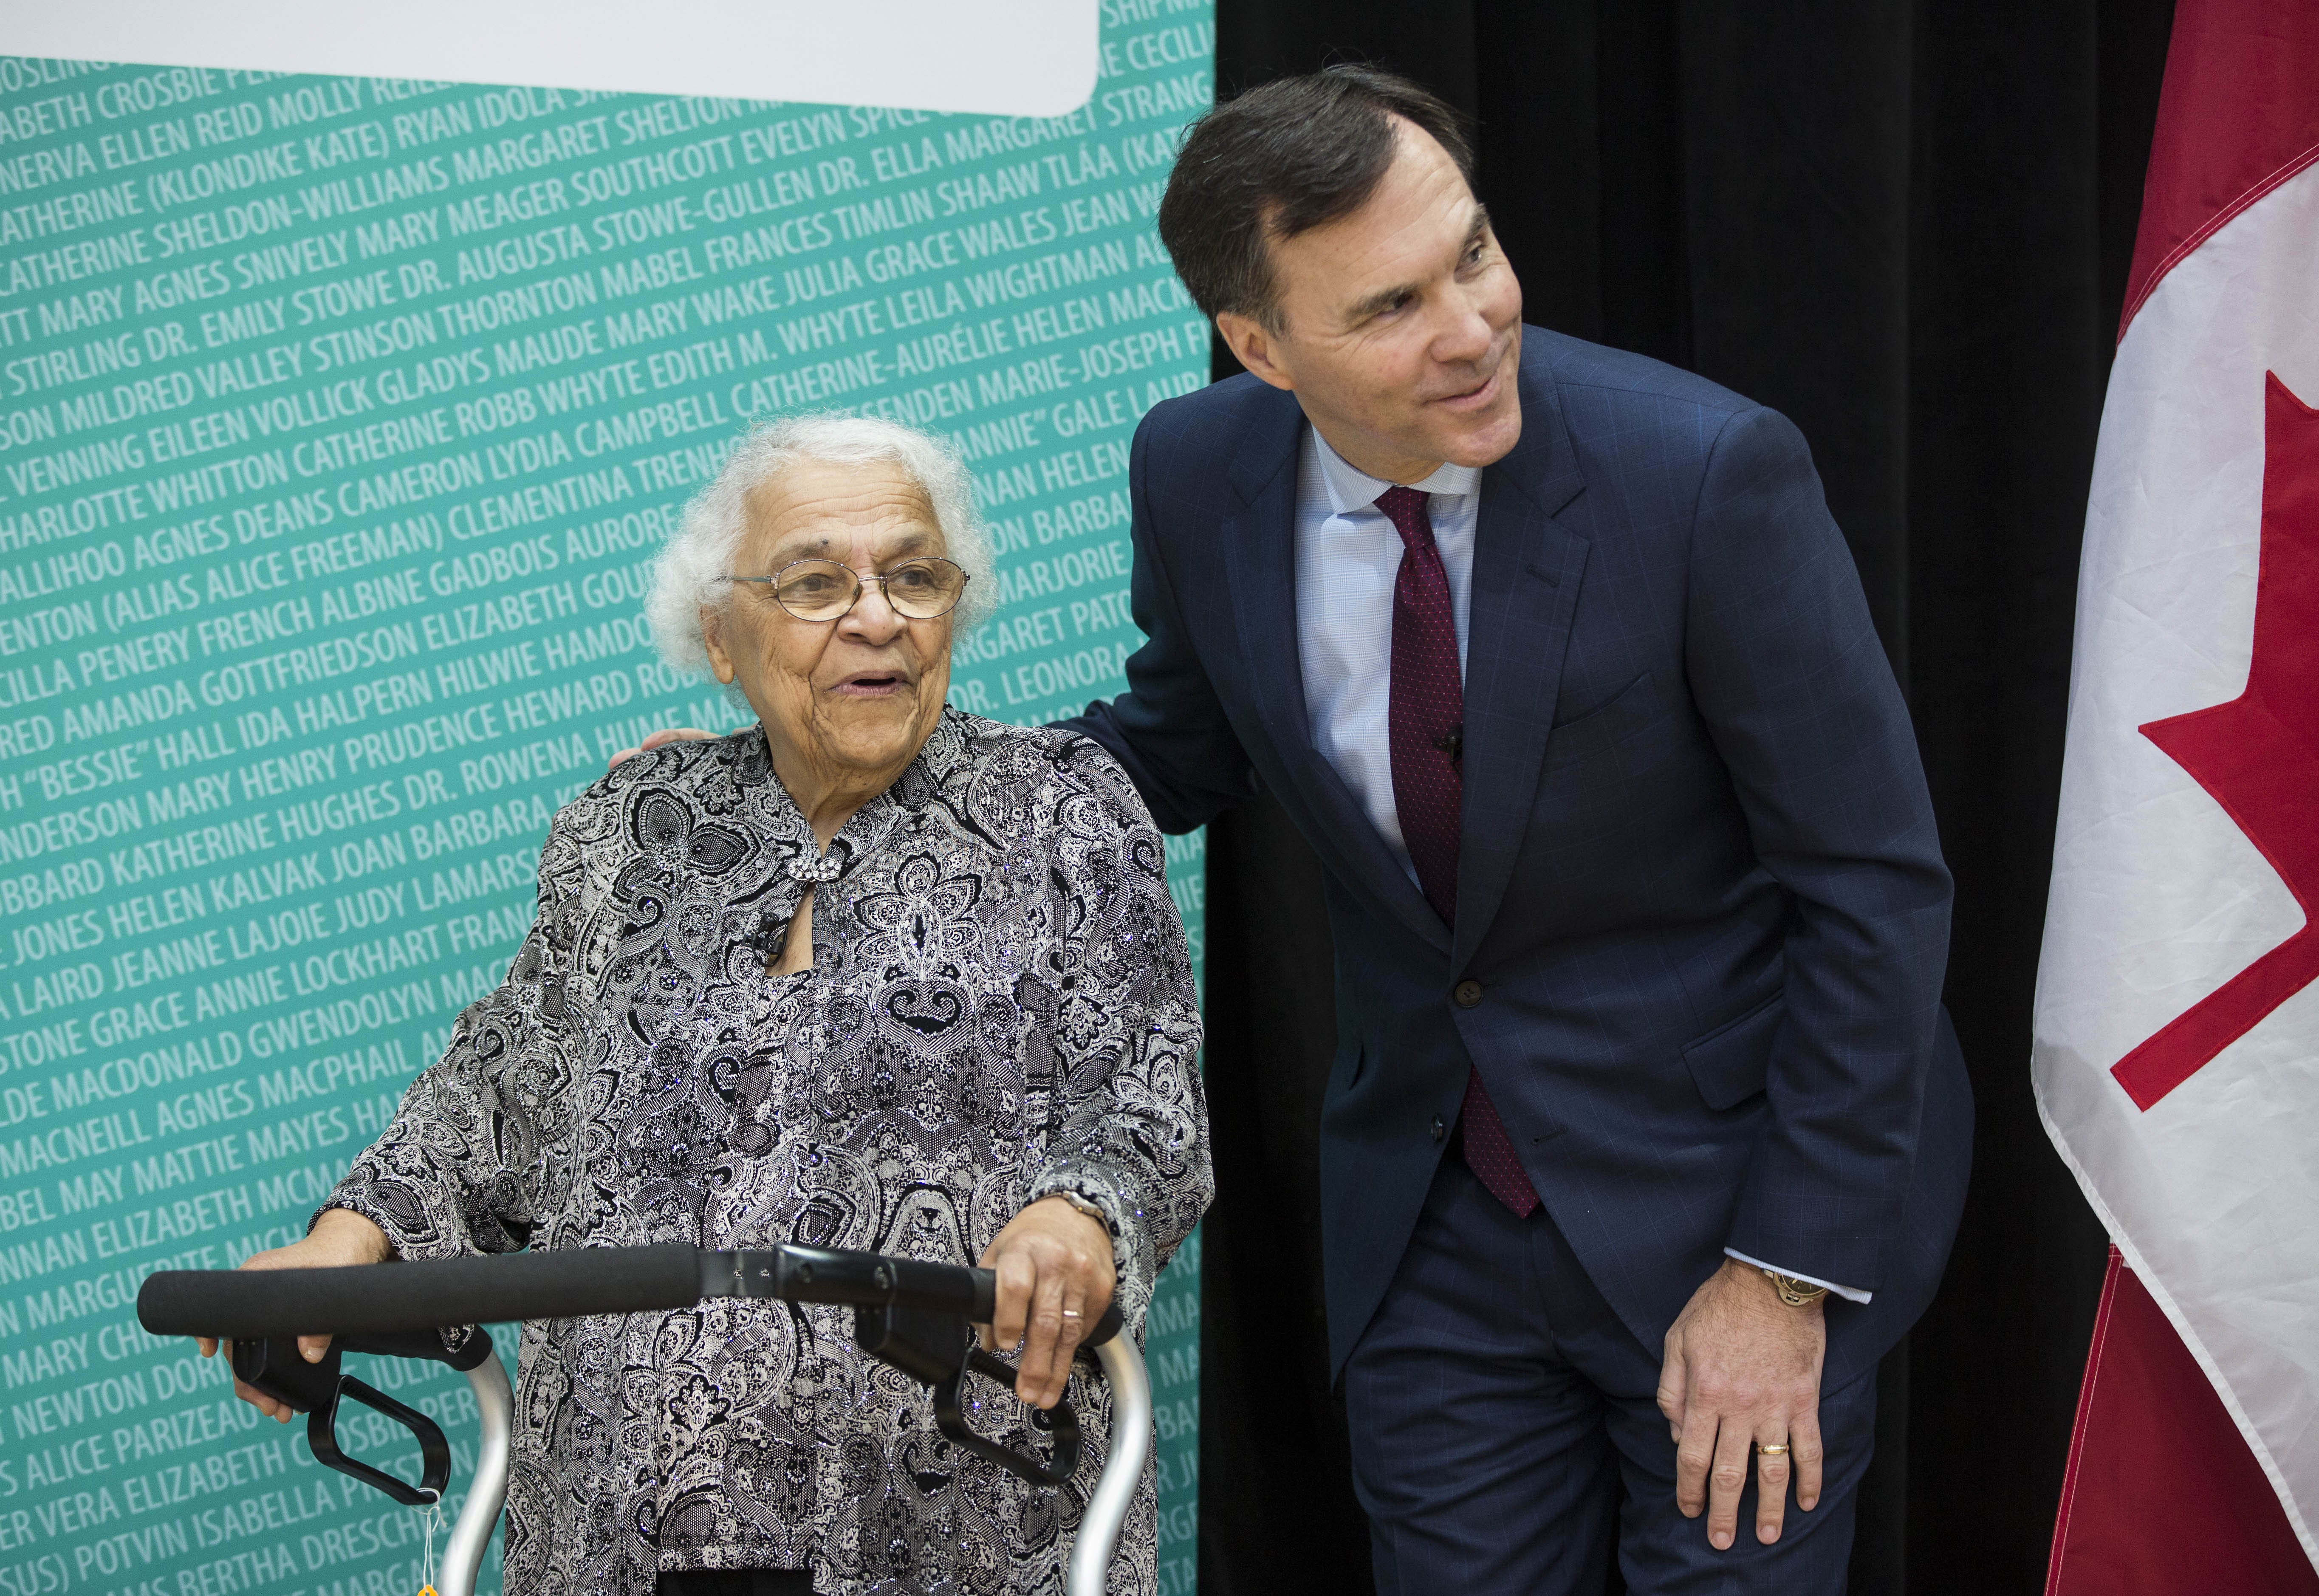 The New Canadian $10 Bill Featuring An Iconic Black Woman Activist Is Now In Circulation